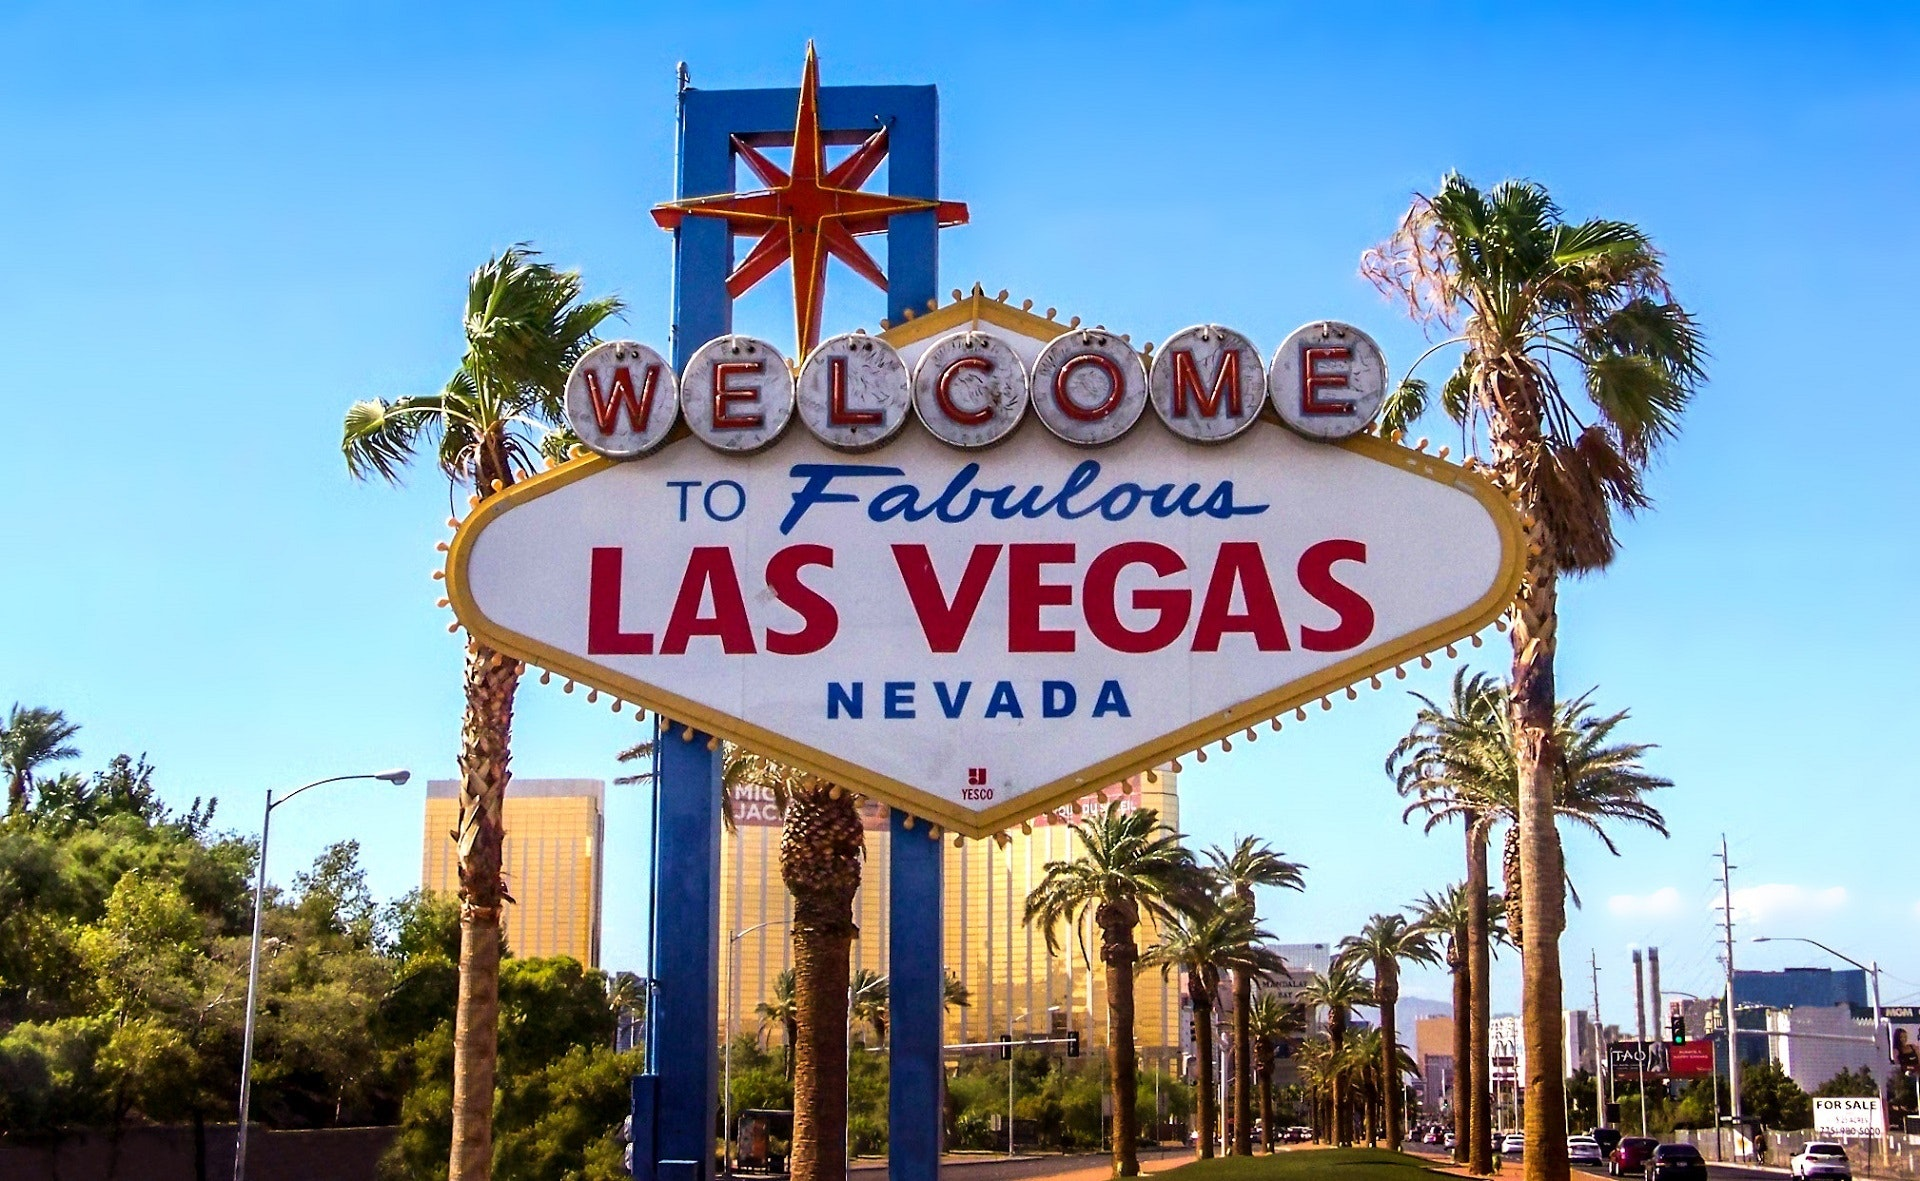 Places to Propose in Las Vegas